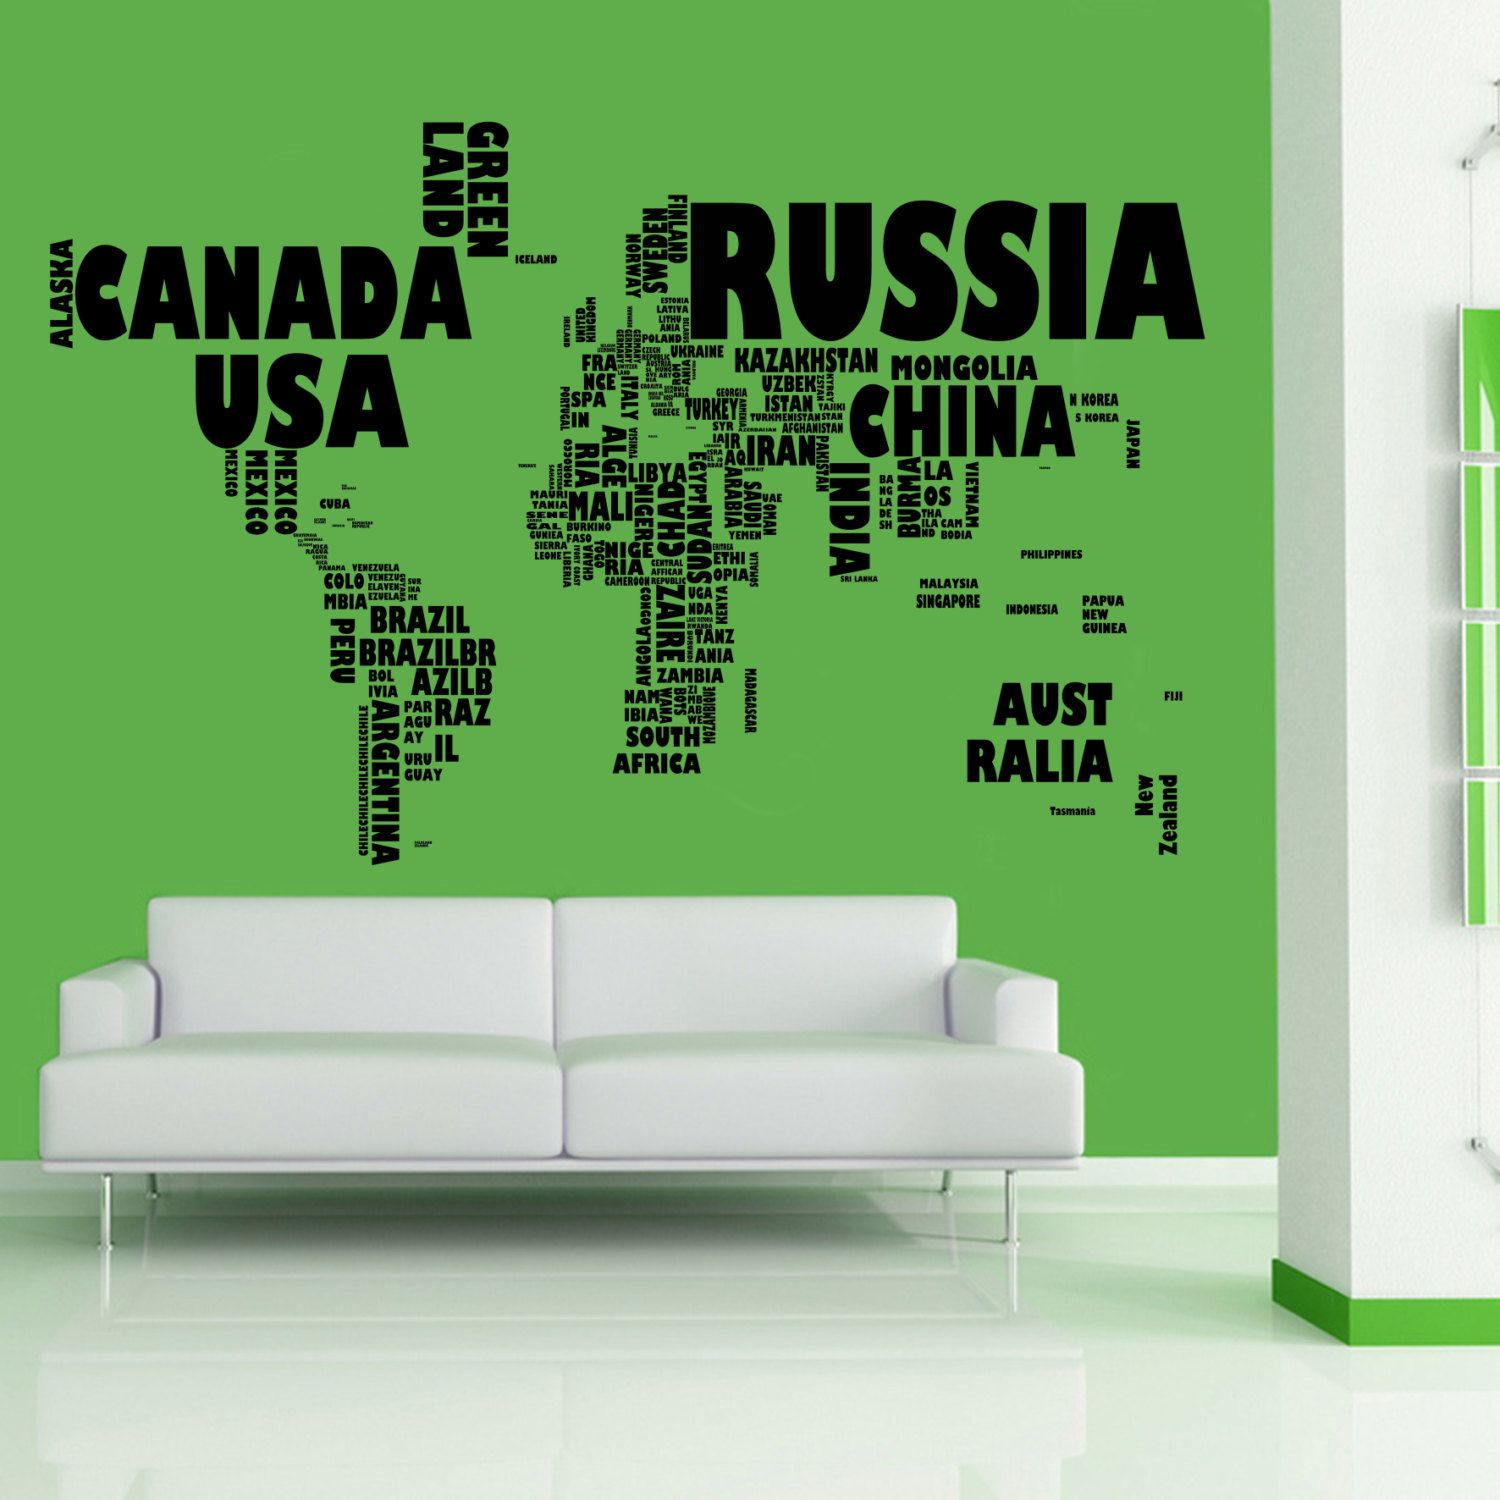 World map in words wall art sticker wa344 4099 via etsy world map in words wall art sticker wa344 4099 via etsy gumiabroncs Images